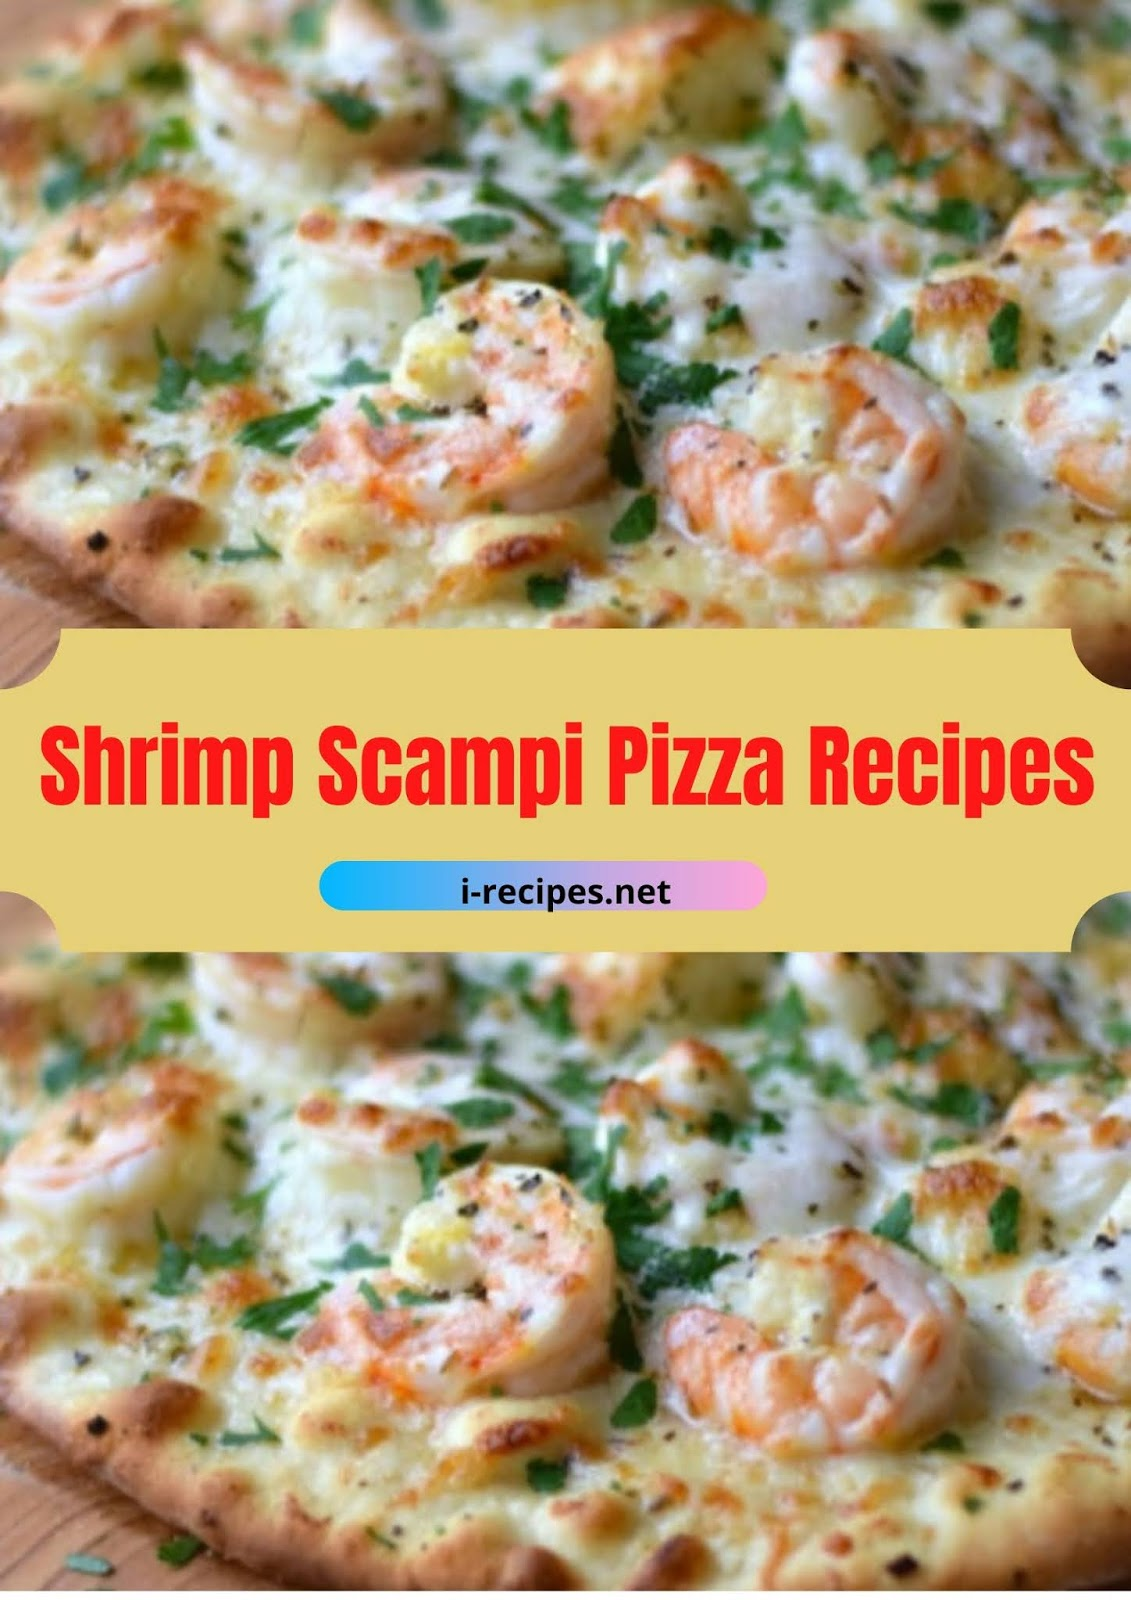 Shrimp Scampi Pizza Recipes